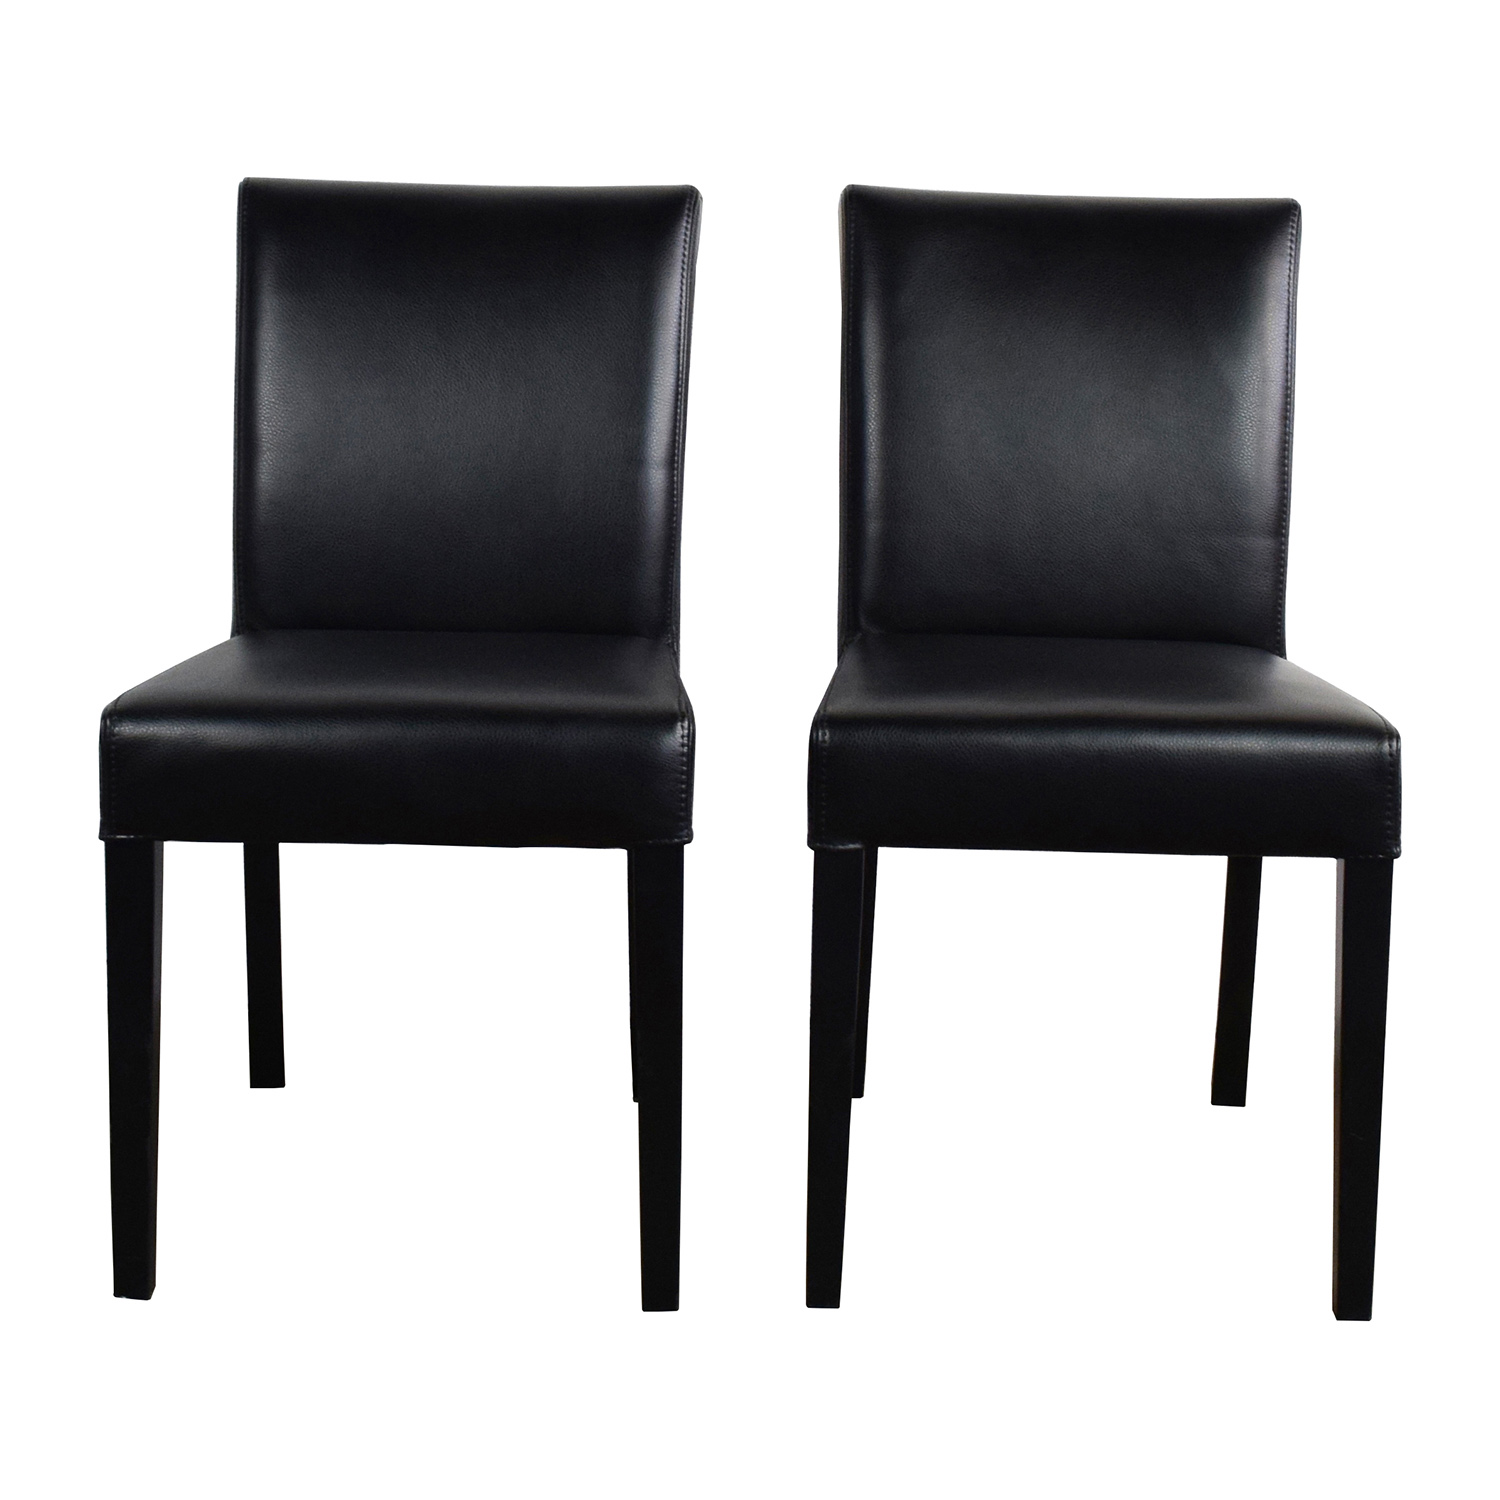 shop Crate & Barrel Lowe Onyx Black Leather Chairs Crate and Barrel Chairs